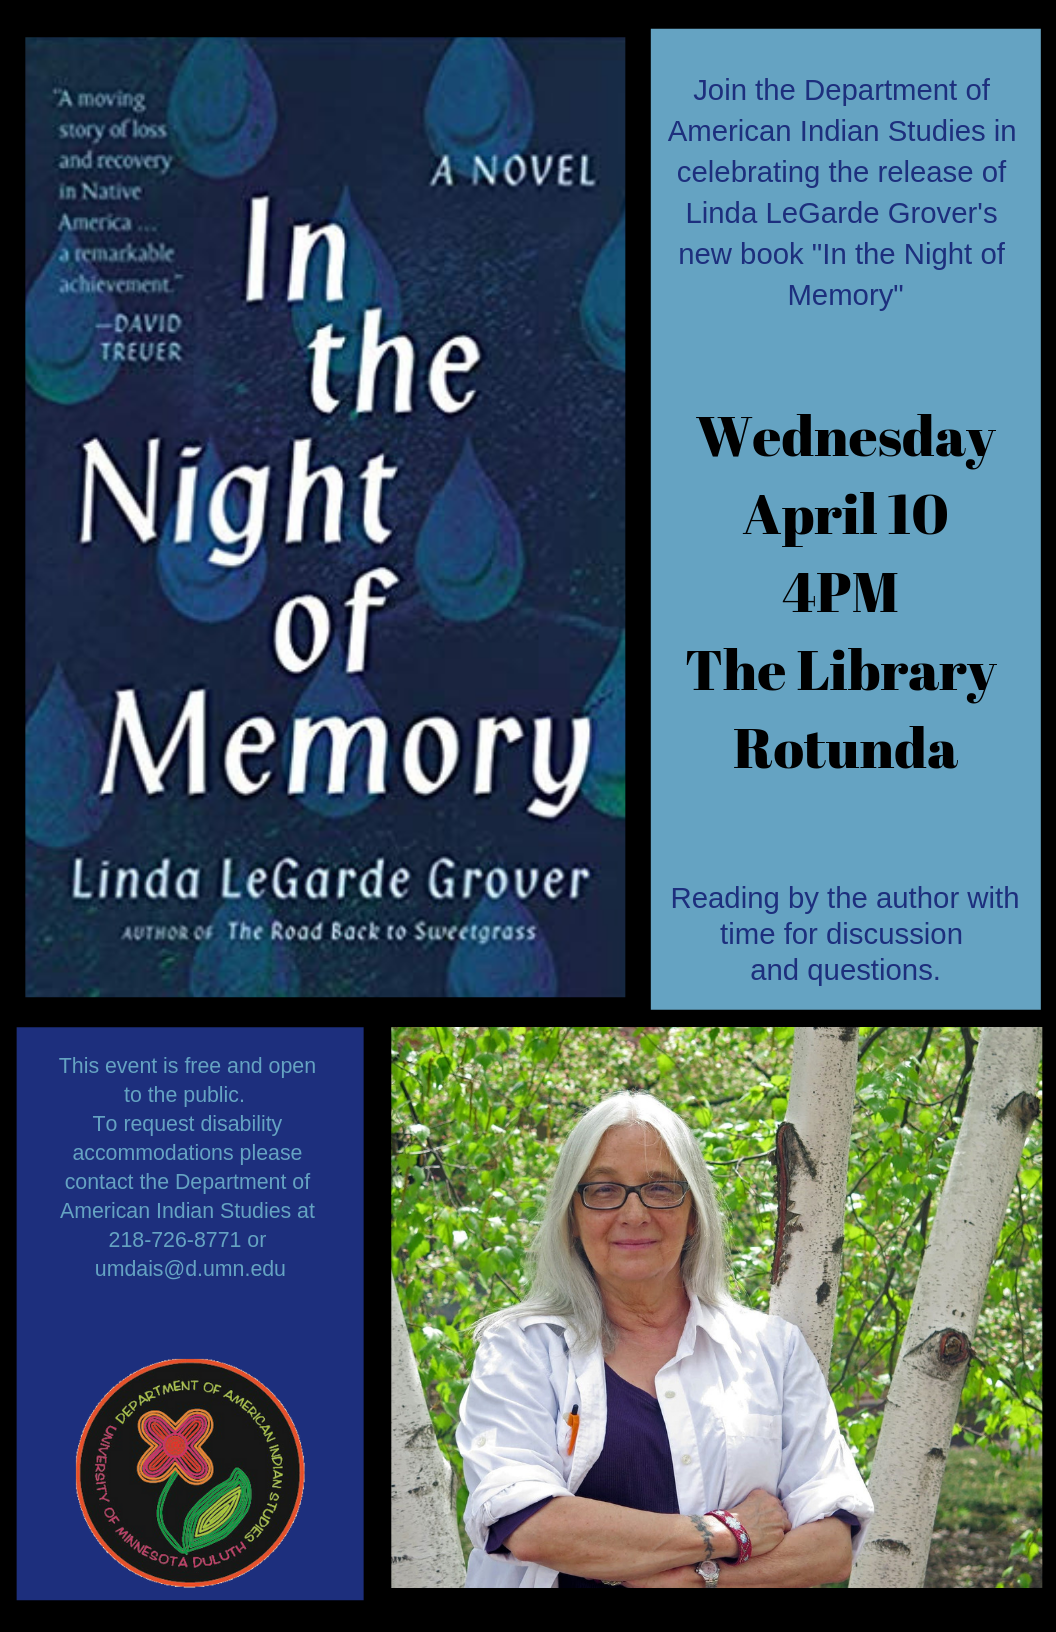 poster image with book cover, text, and photo of author